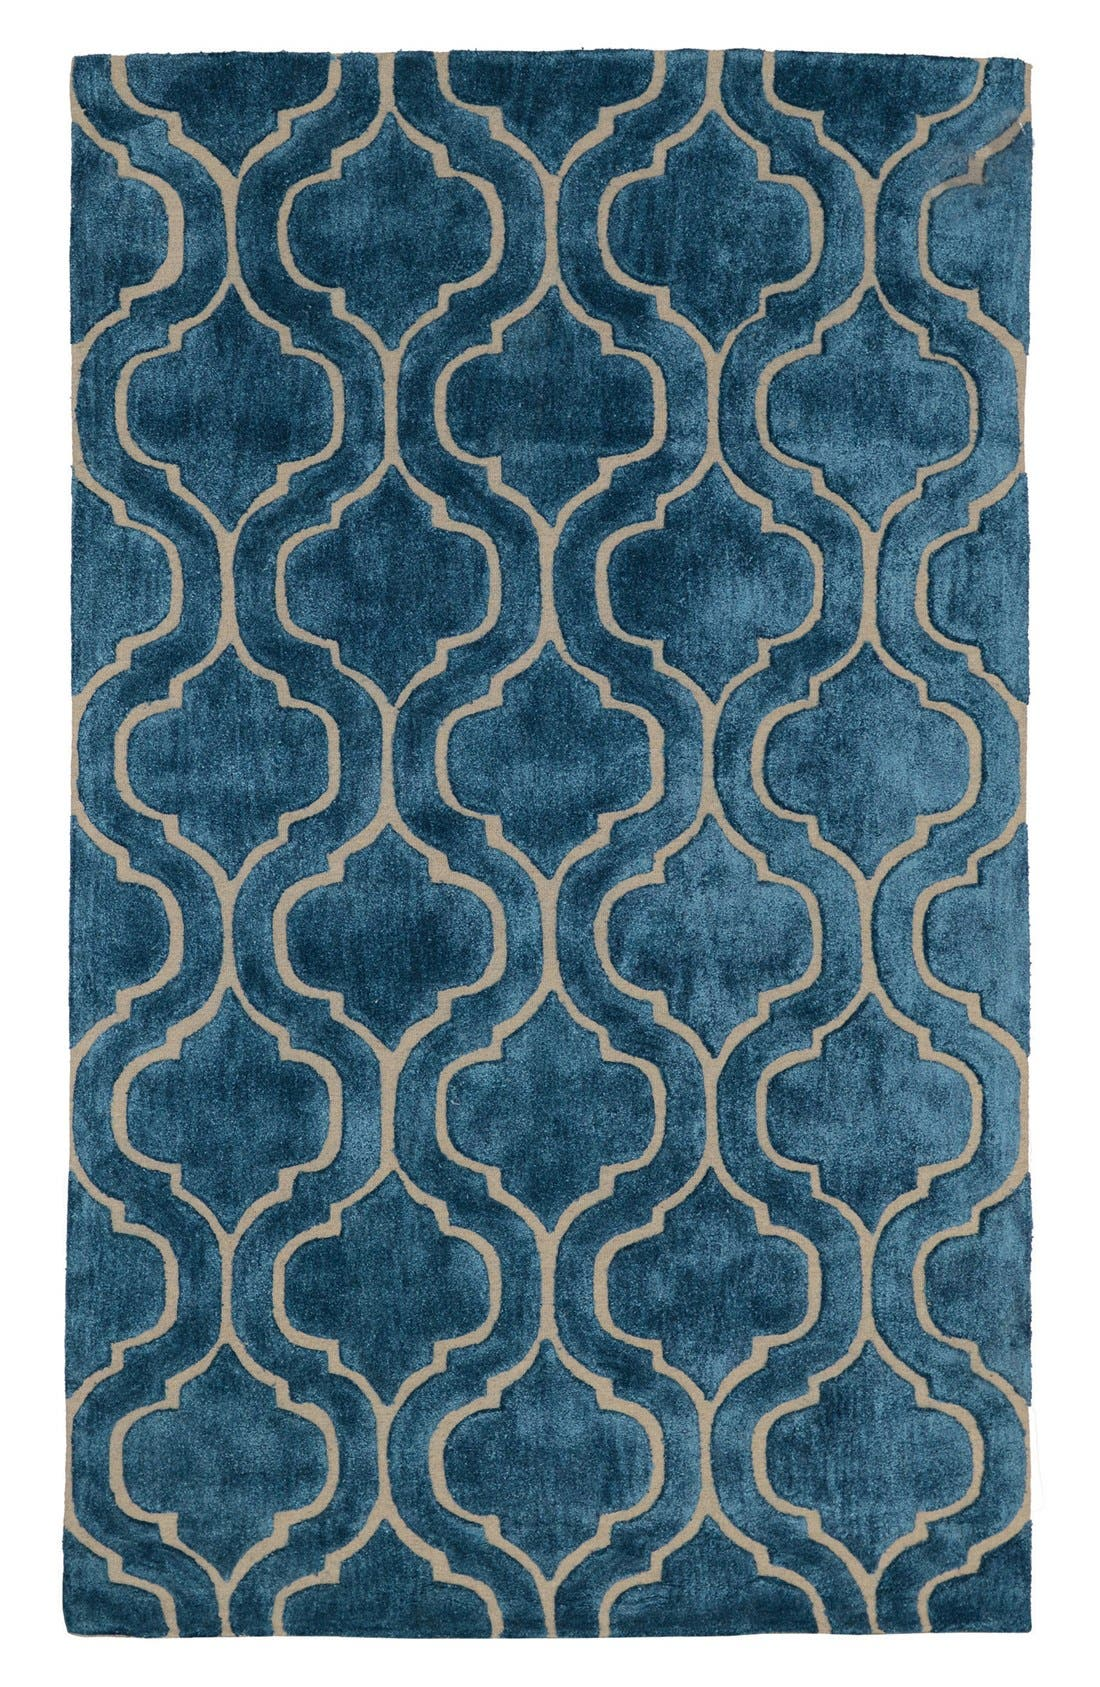 Villa Home 'Over Tufted - Blue Jay' Rug,                             Main thumbnail 1, color,                             400